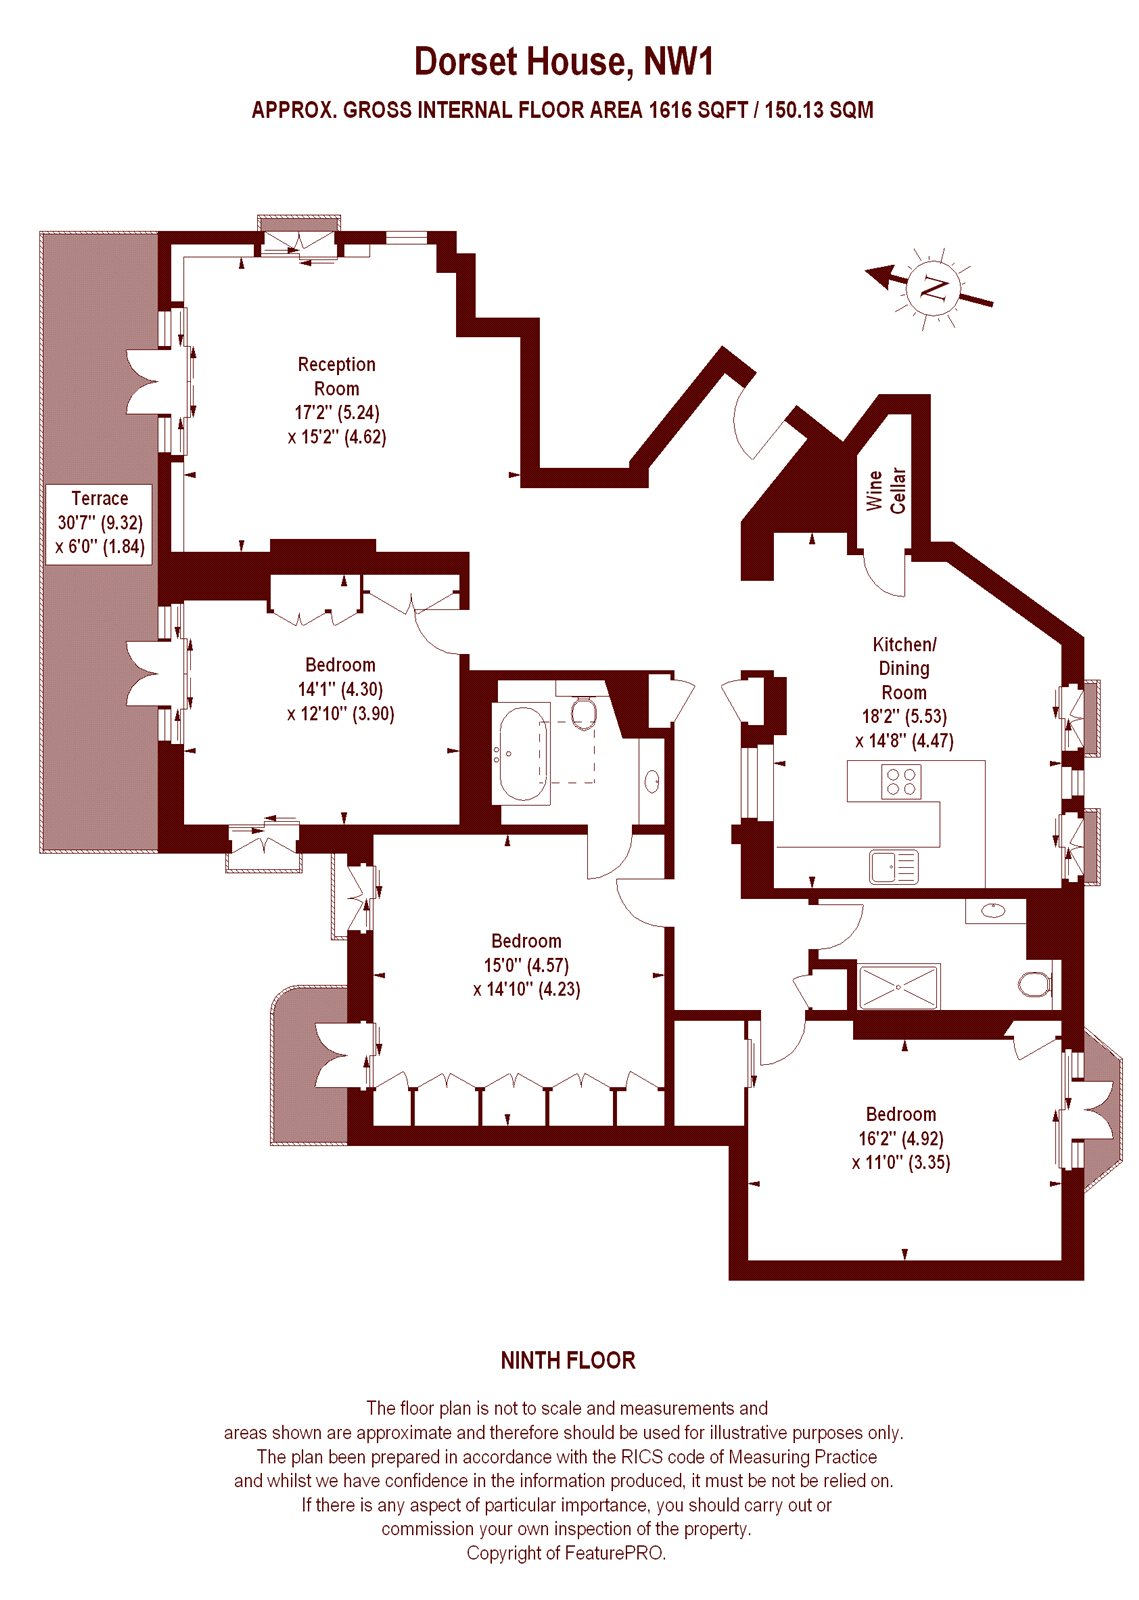 3 bedroom dorset house gloucester place marylebone nw1 for Apartment floor plans london